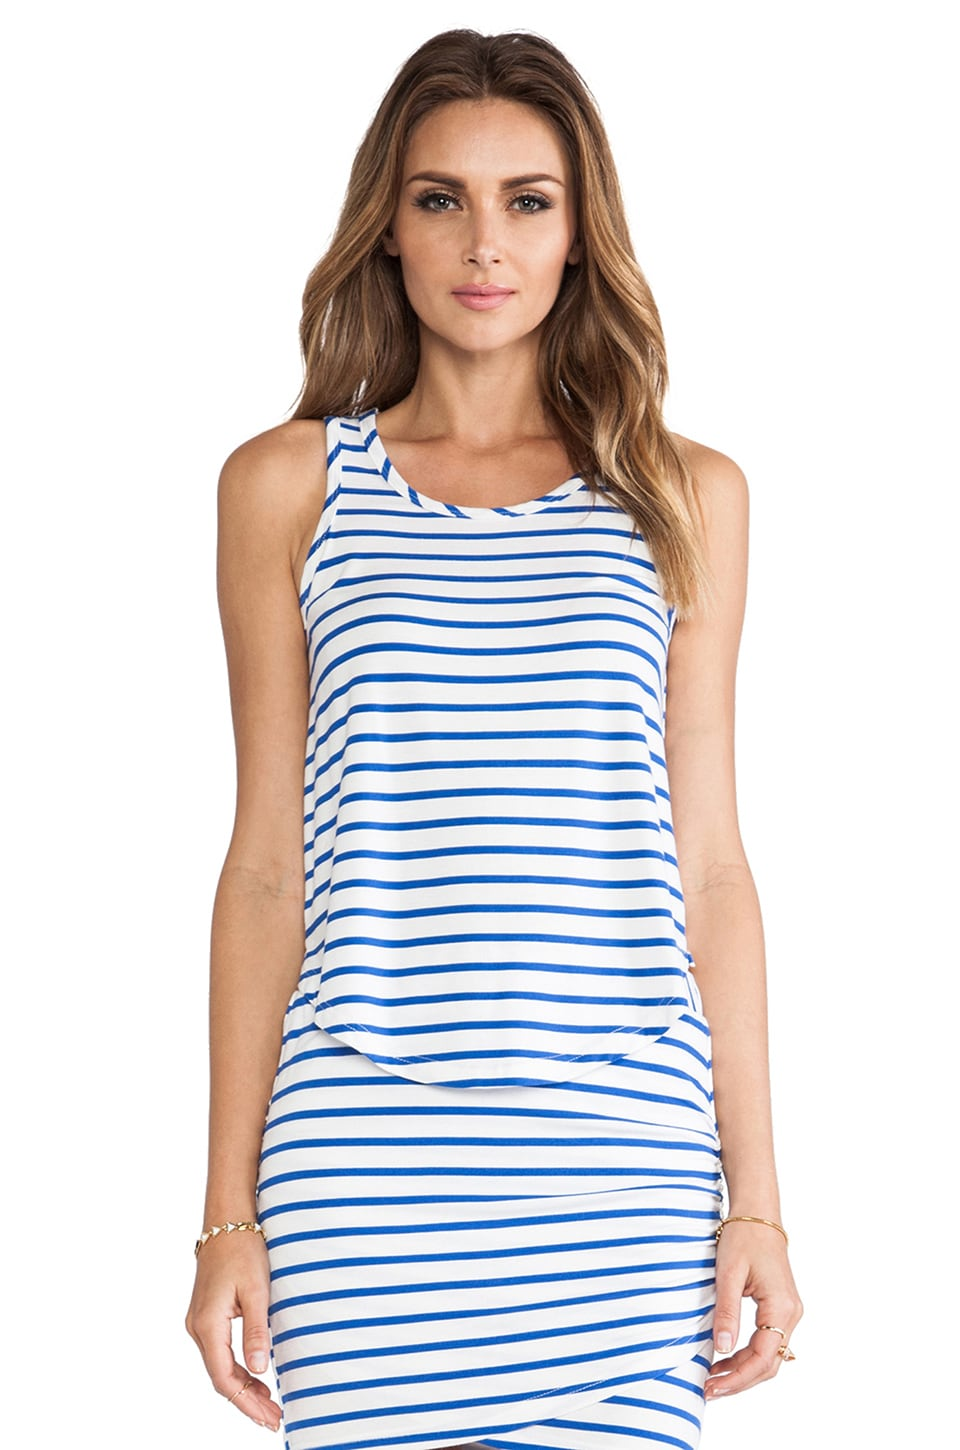 harlyn Stripped Low-High Tank in Cobalt & White